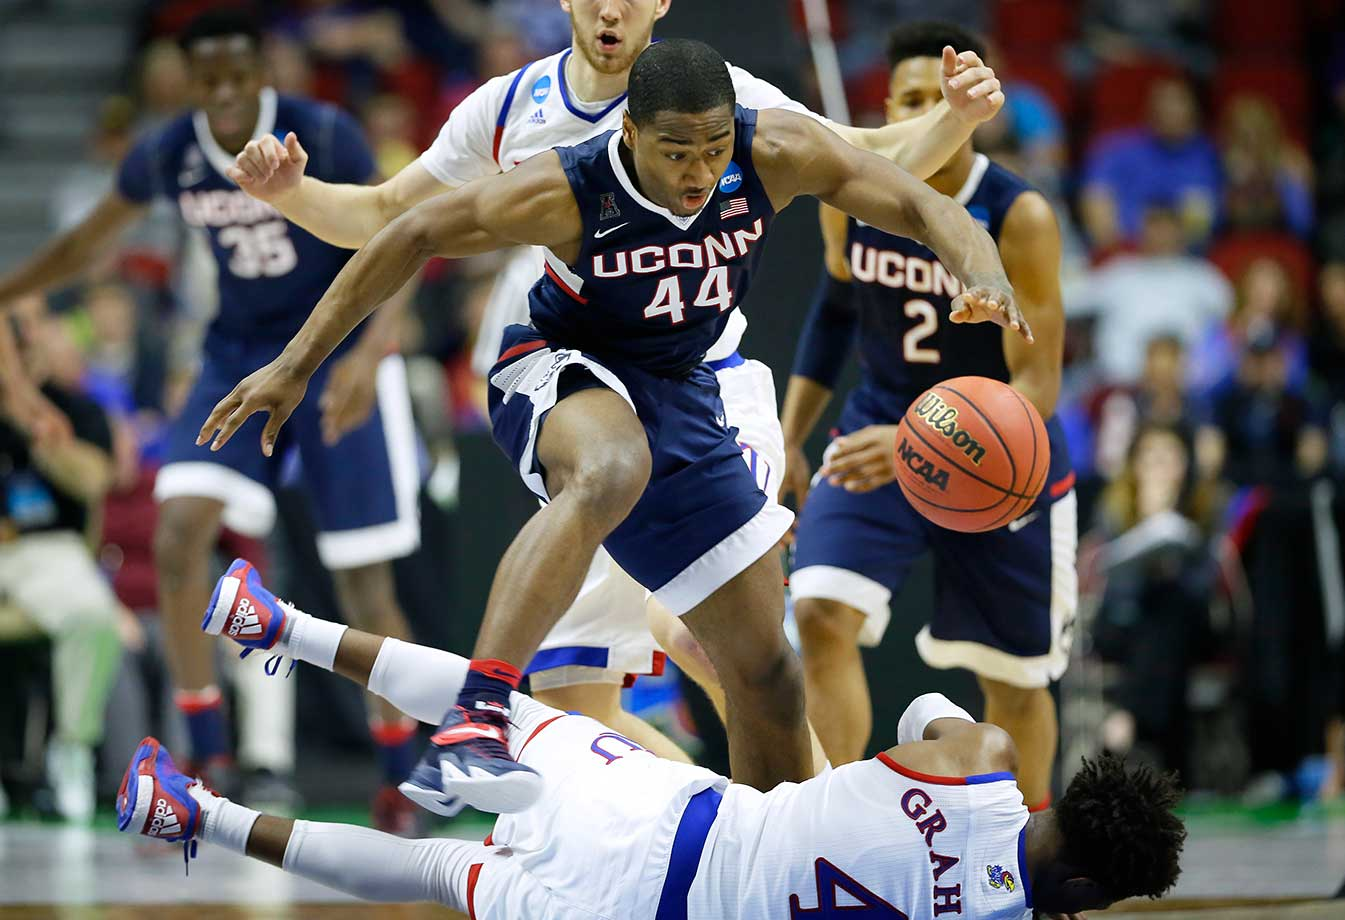 Connecticut guard Rodney Purvis leaps over Kansas guard Devonte' Graham while chasing down a loose ball.